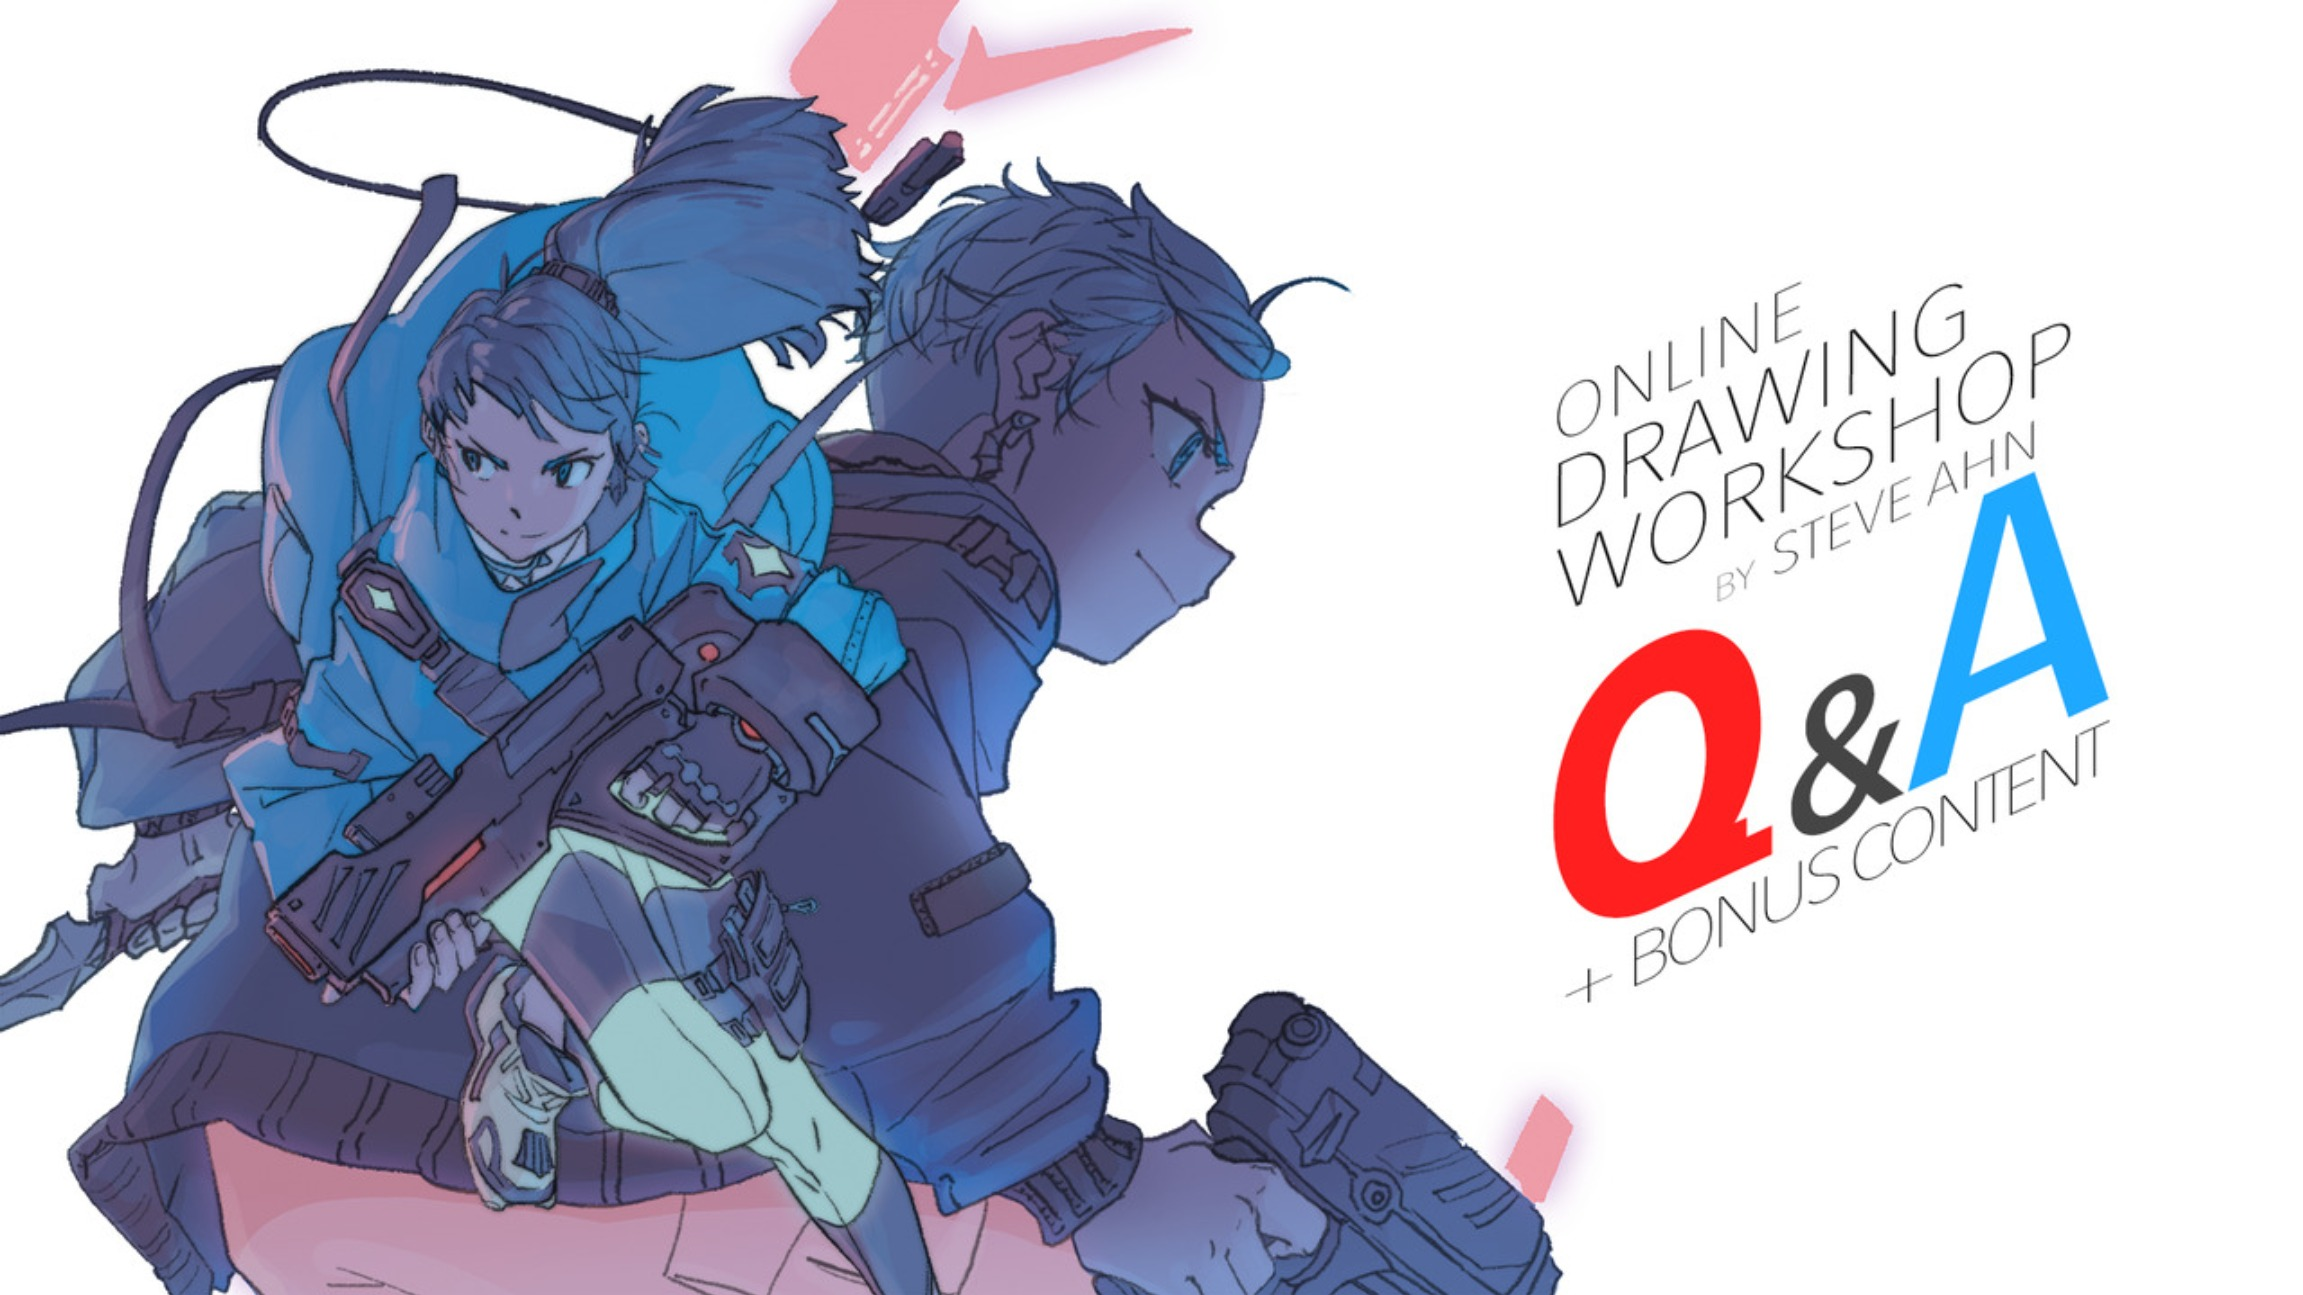 Online Drawing Workshop - 8 Hrs Additional Lecture Videos in Q&A Format